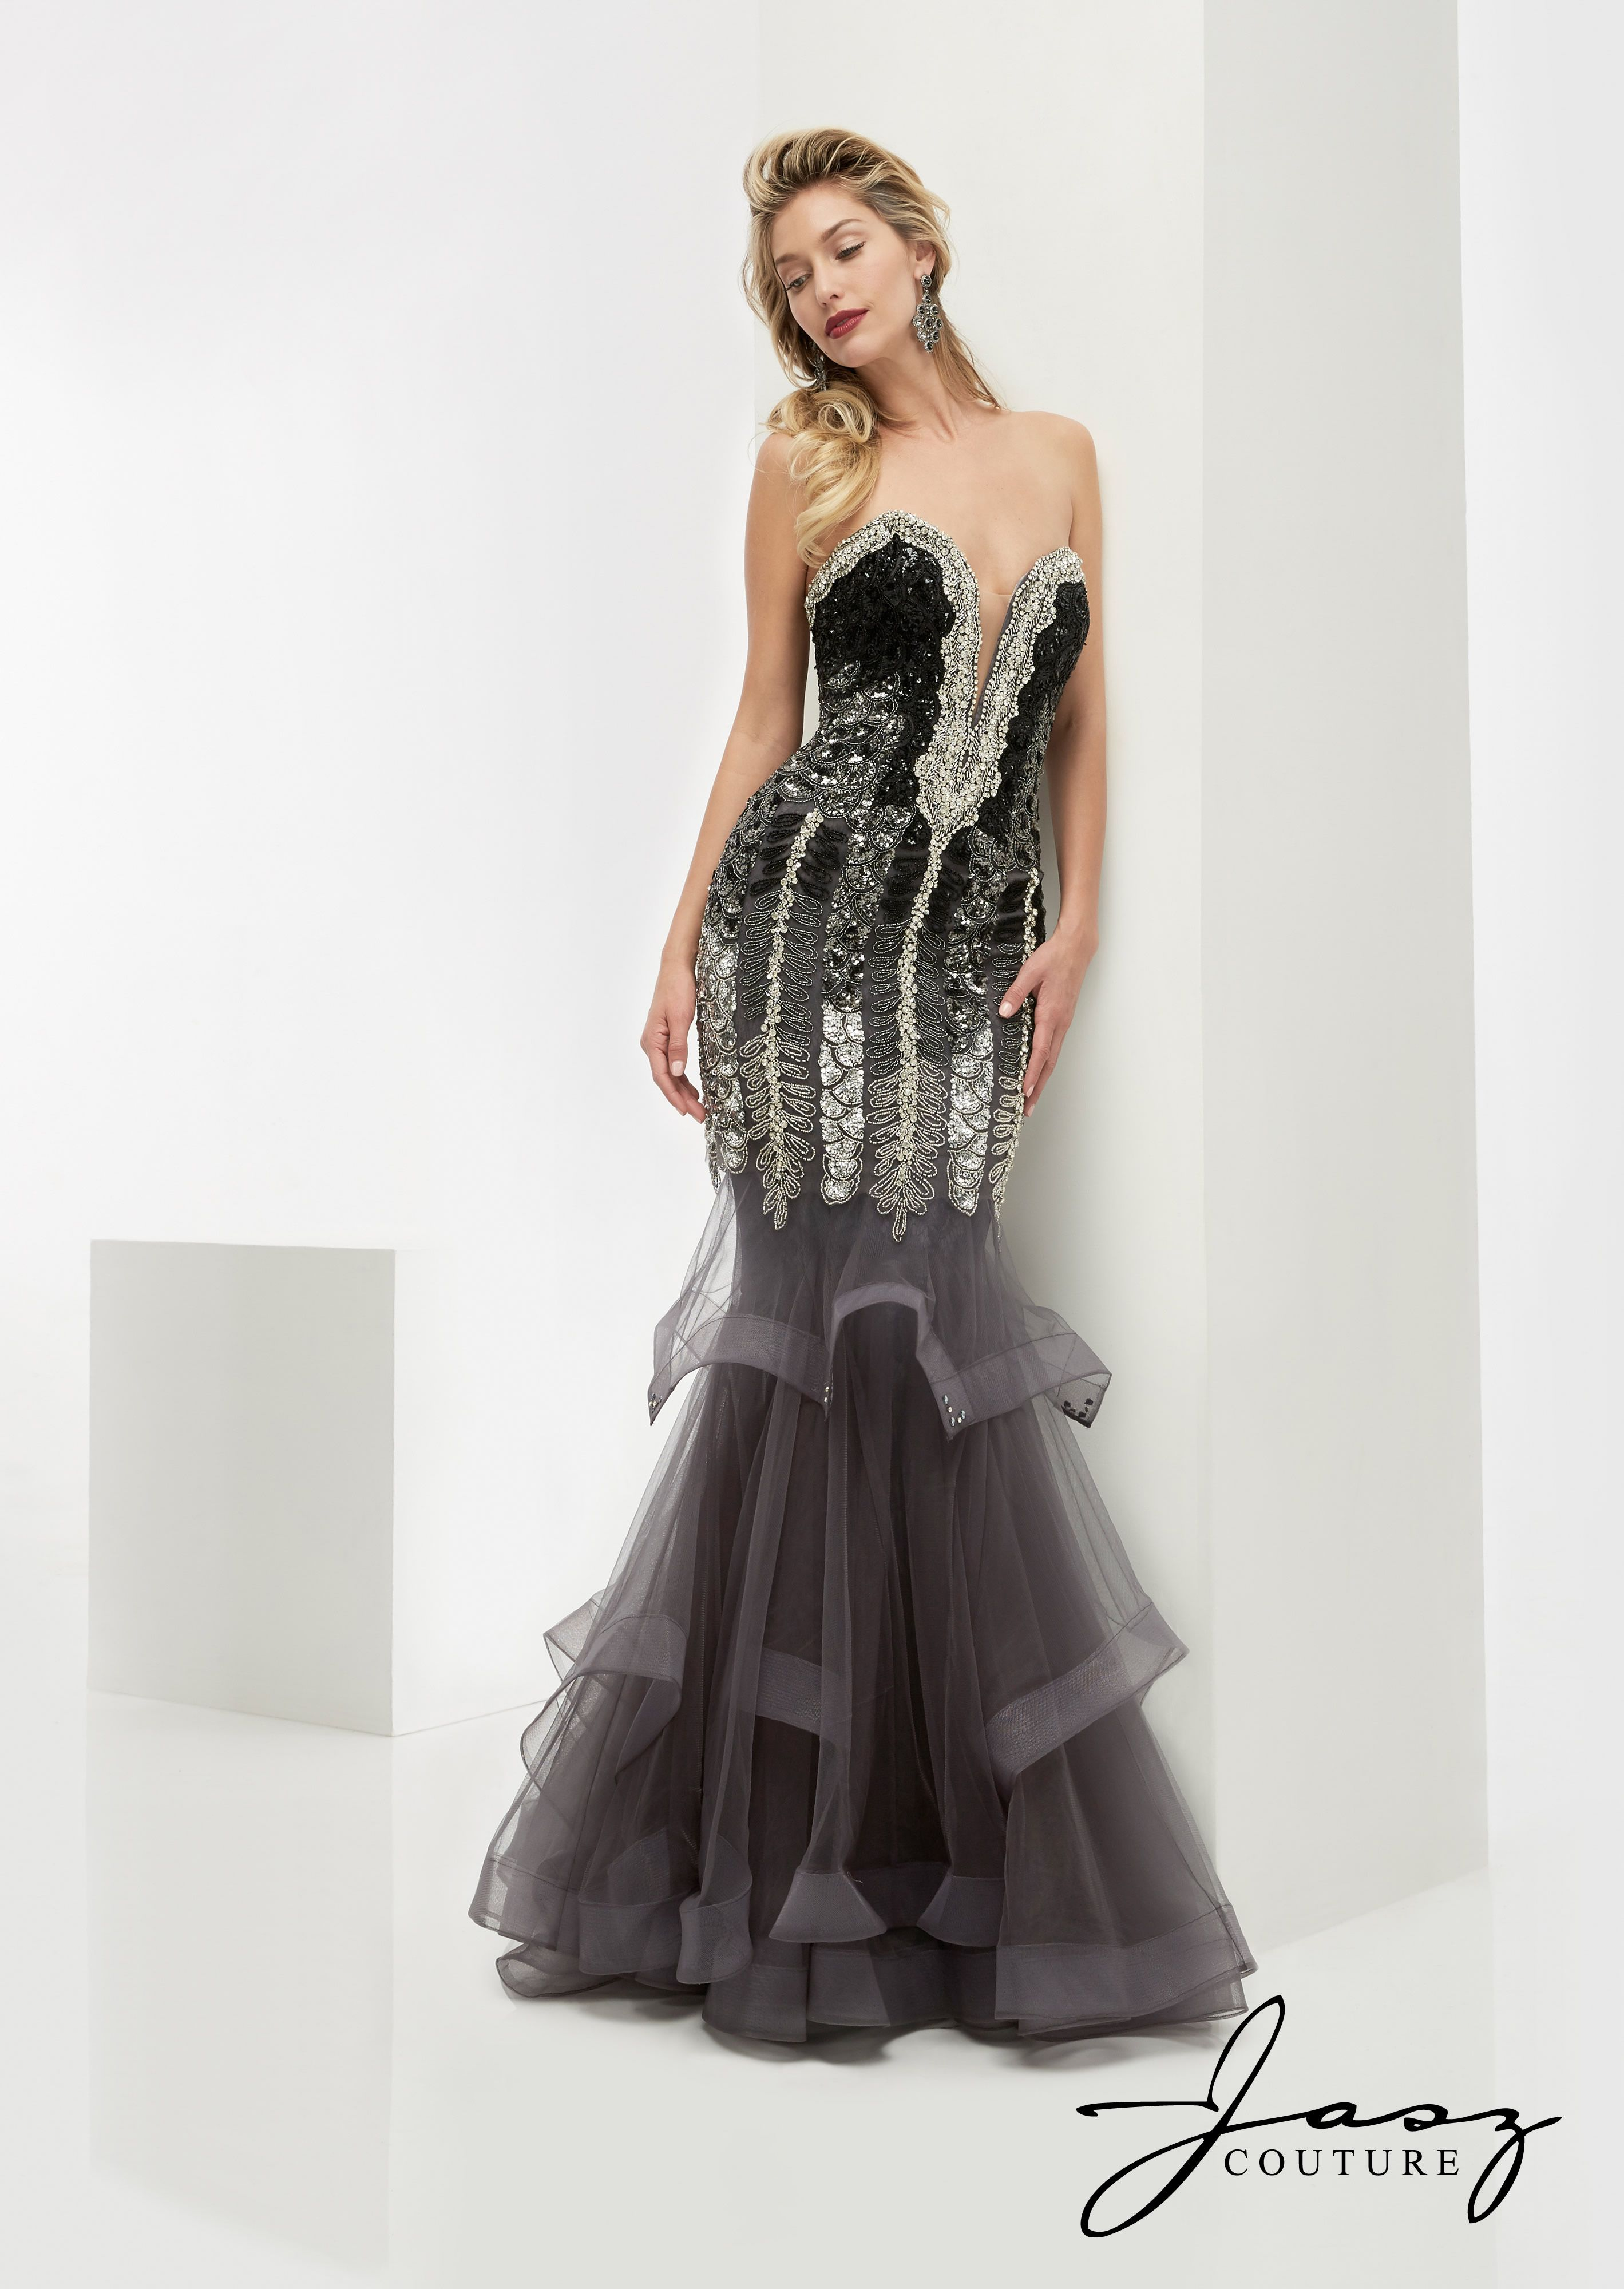 Jasz couture tht dress pinterest couture prom and fashion